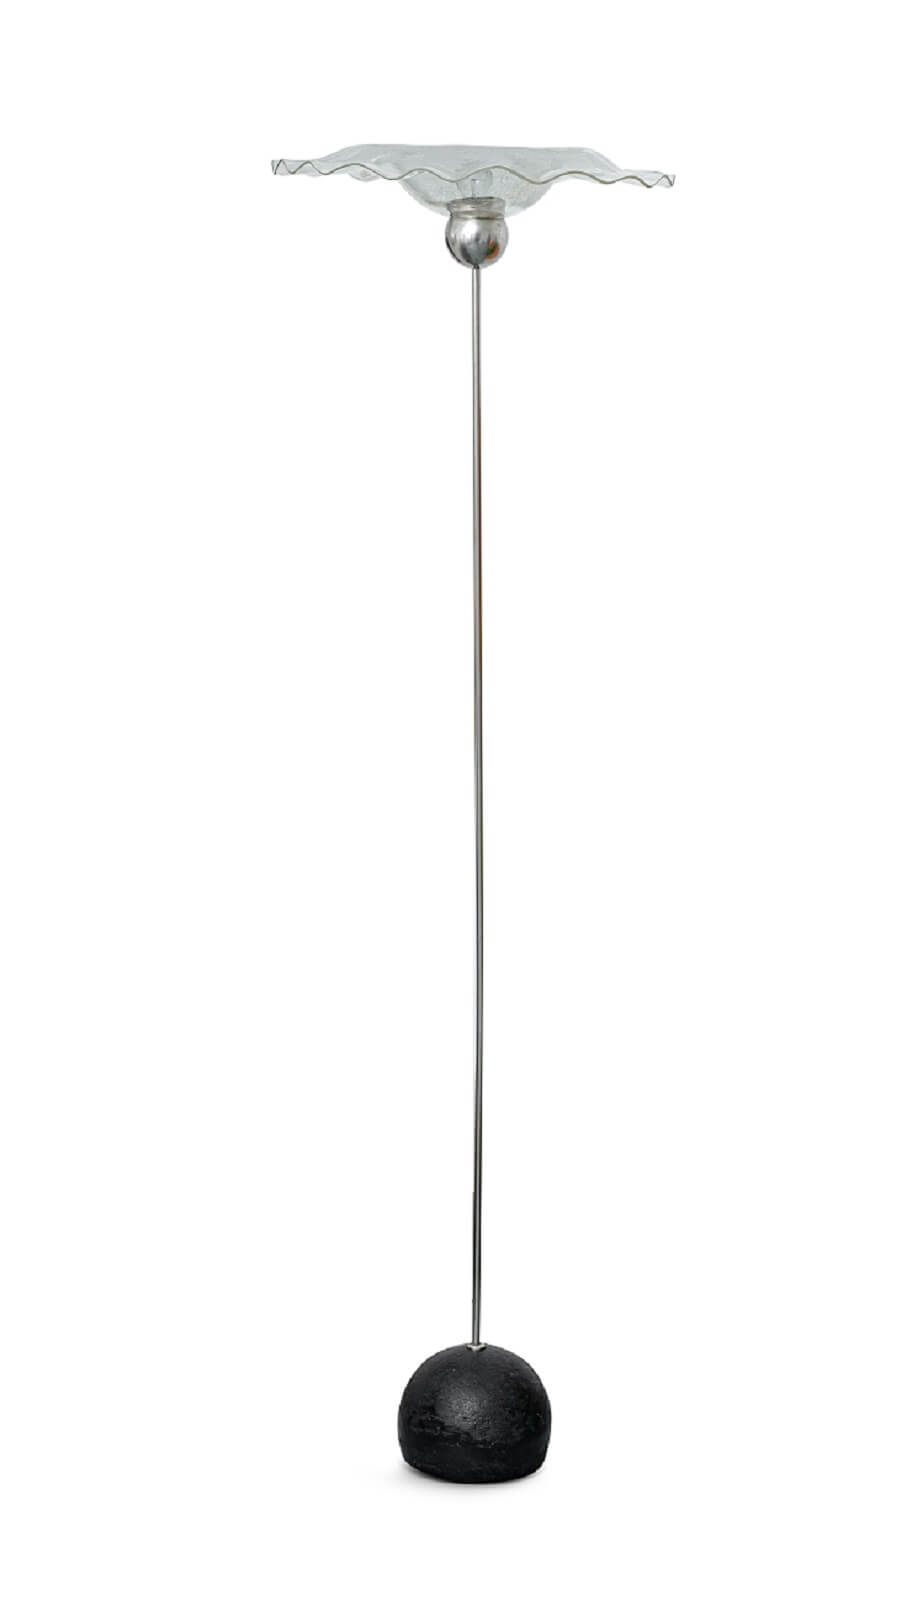 Floor lamp by Toni Zuccheri for sale